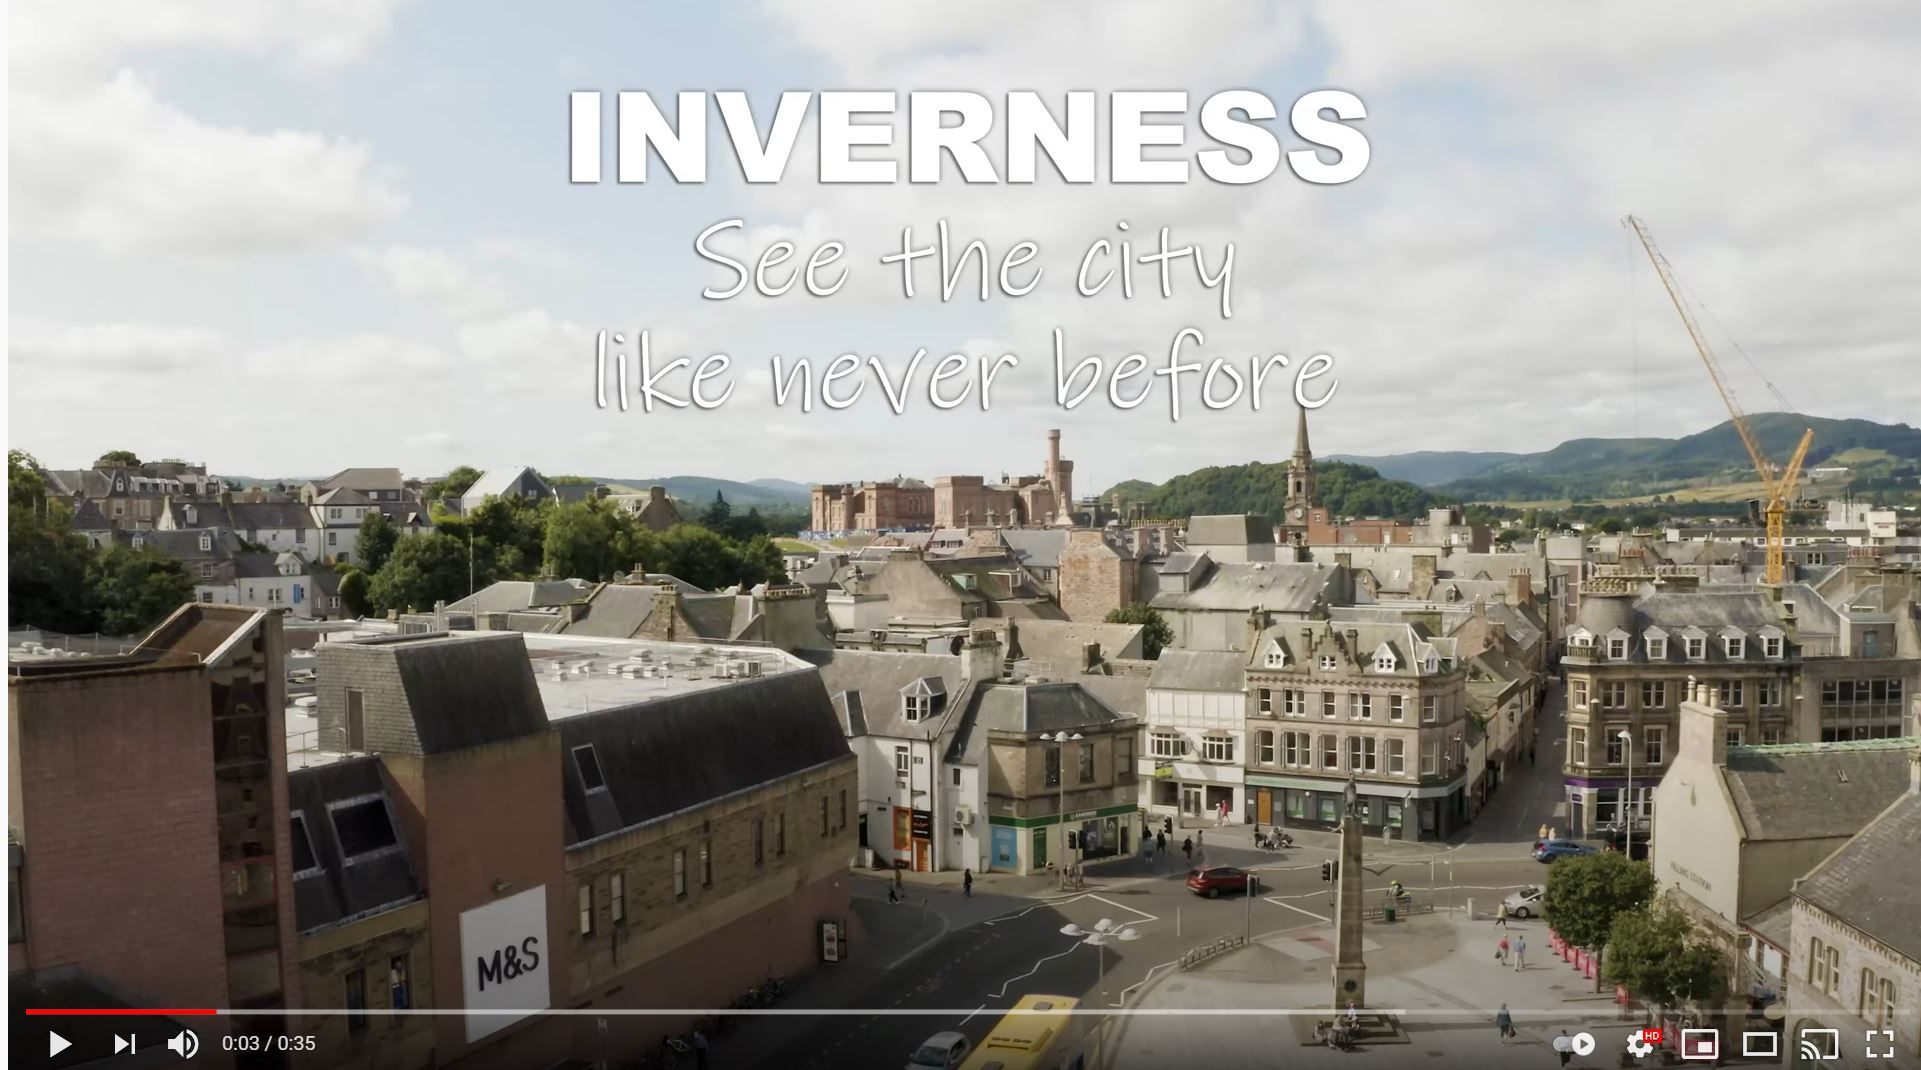 Inverness See the City Like Never Before